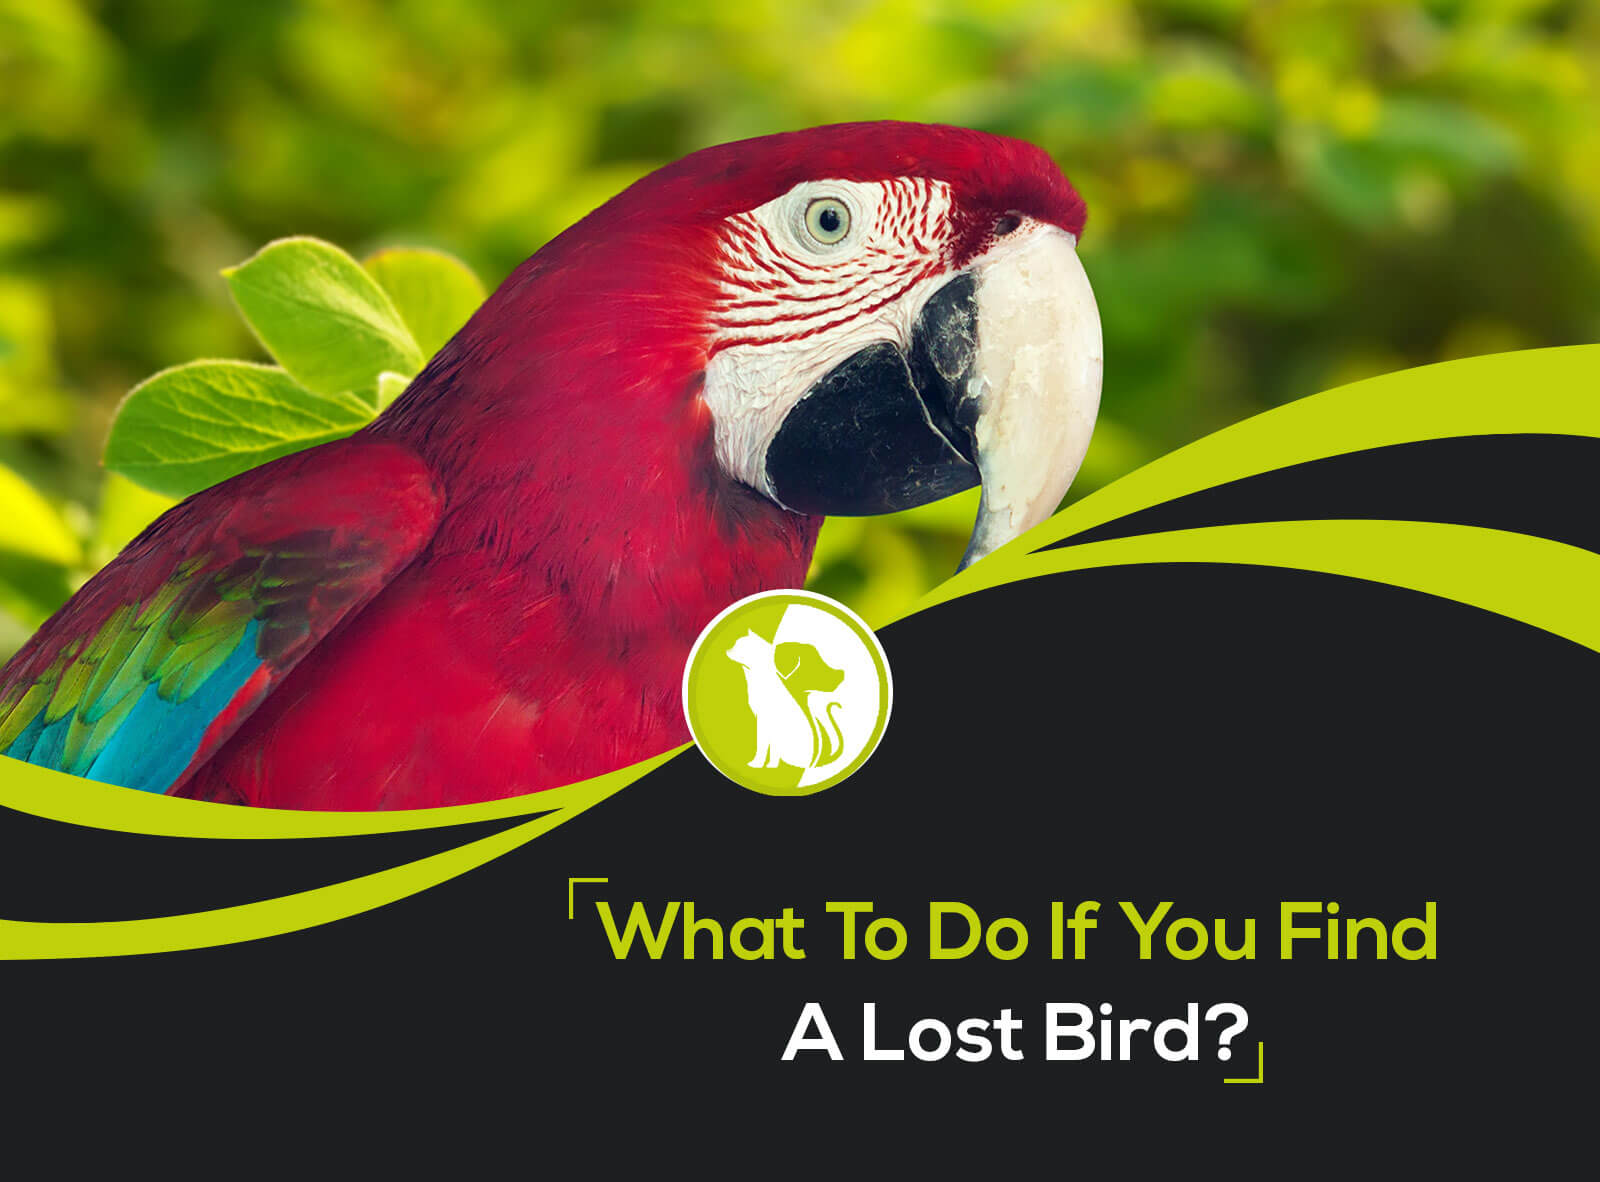 What to Do If You Find a Lost Bird?